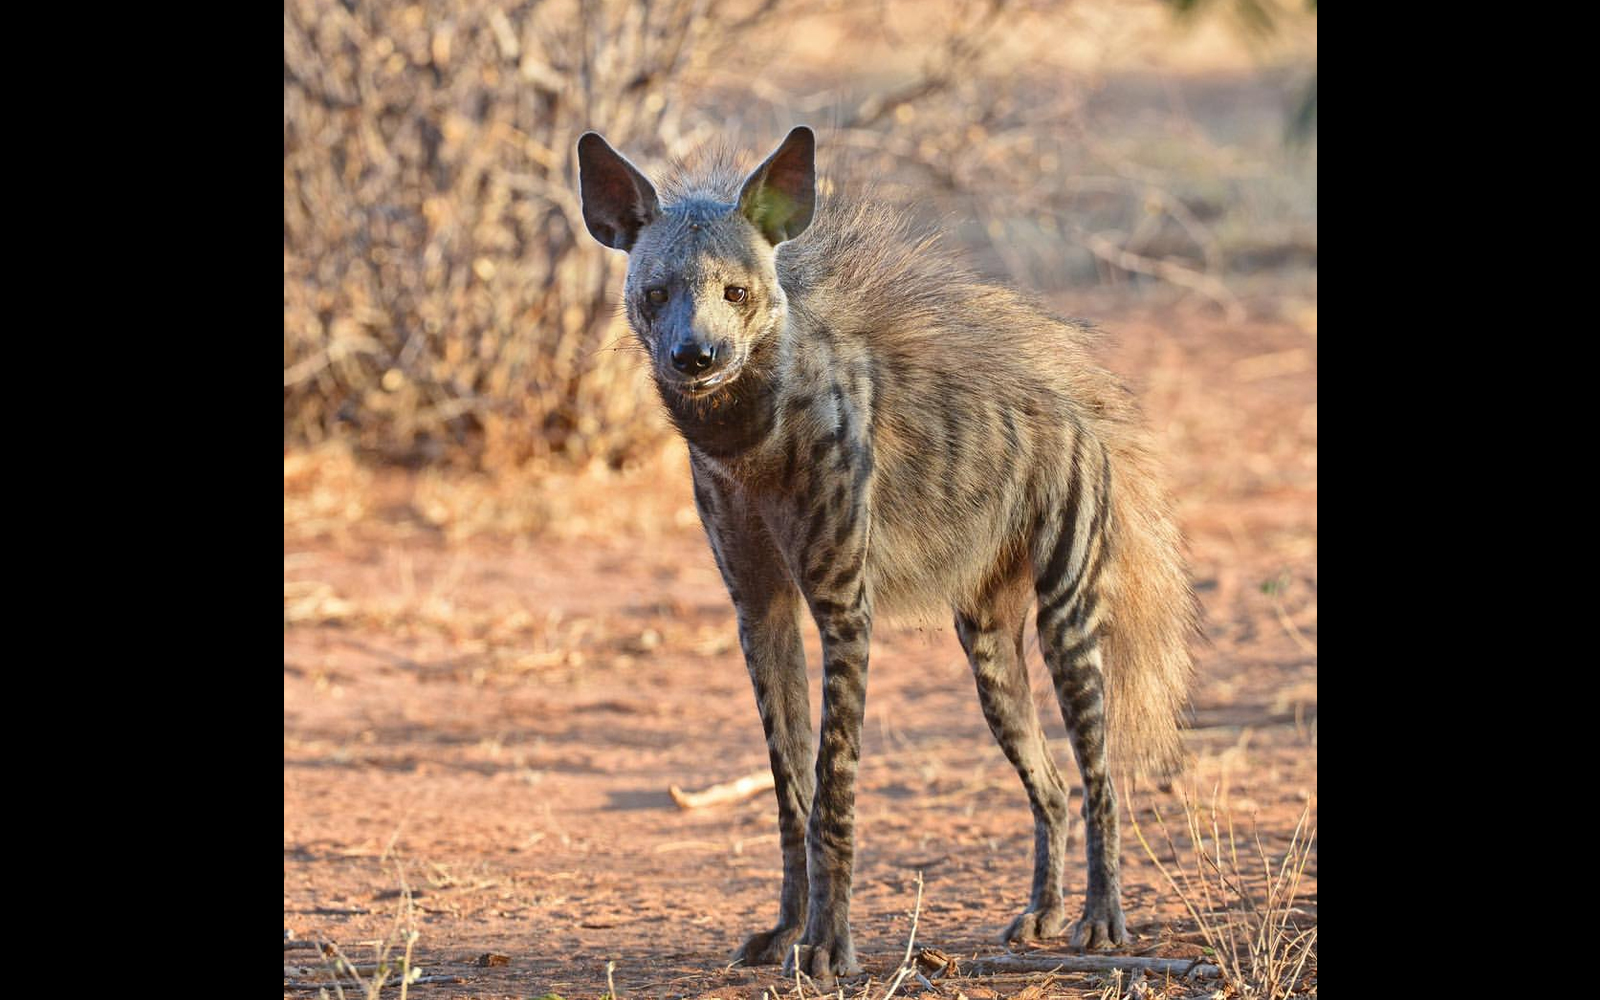 A striped hyena in Samburu National Reserve, Kenya – chosen for the rarity of such a sighting © Andrew Campbell (Instagram/acsafaris)